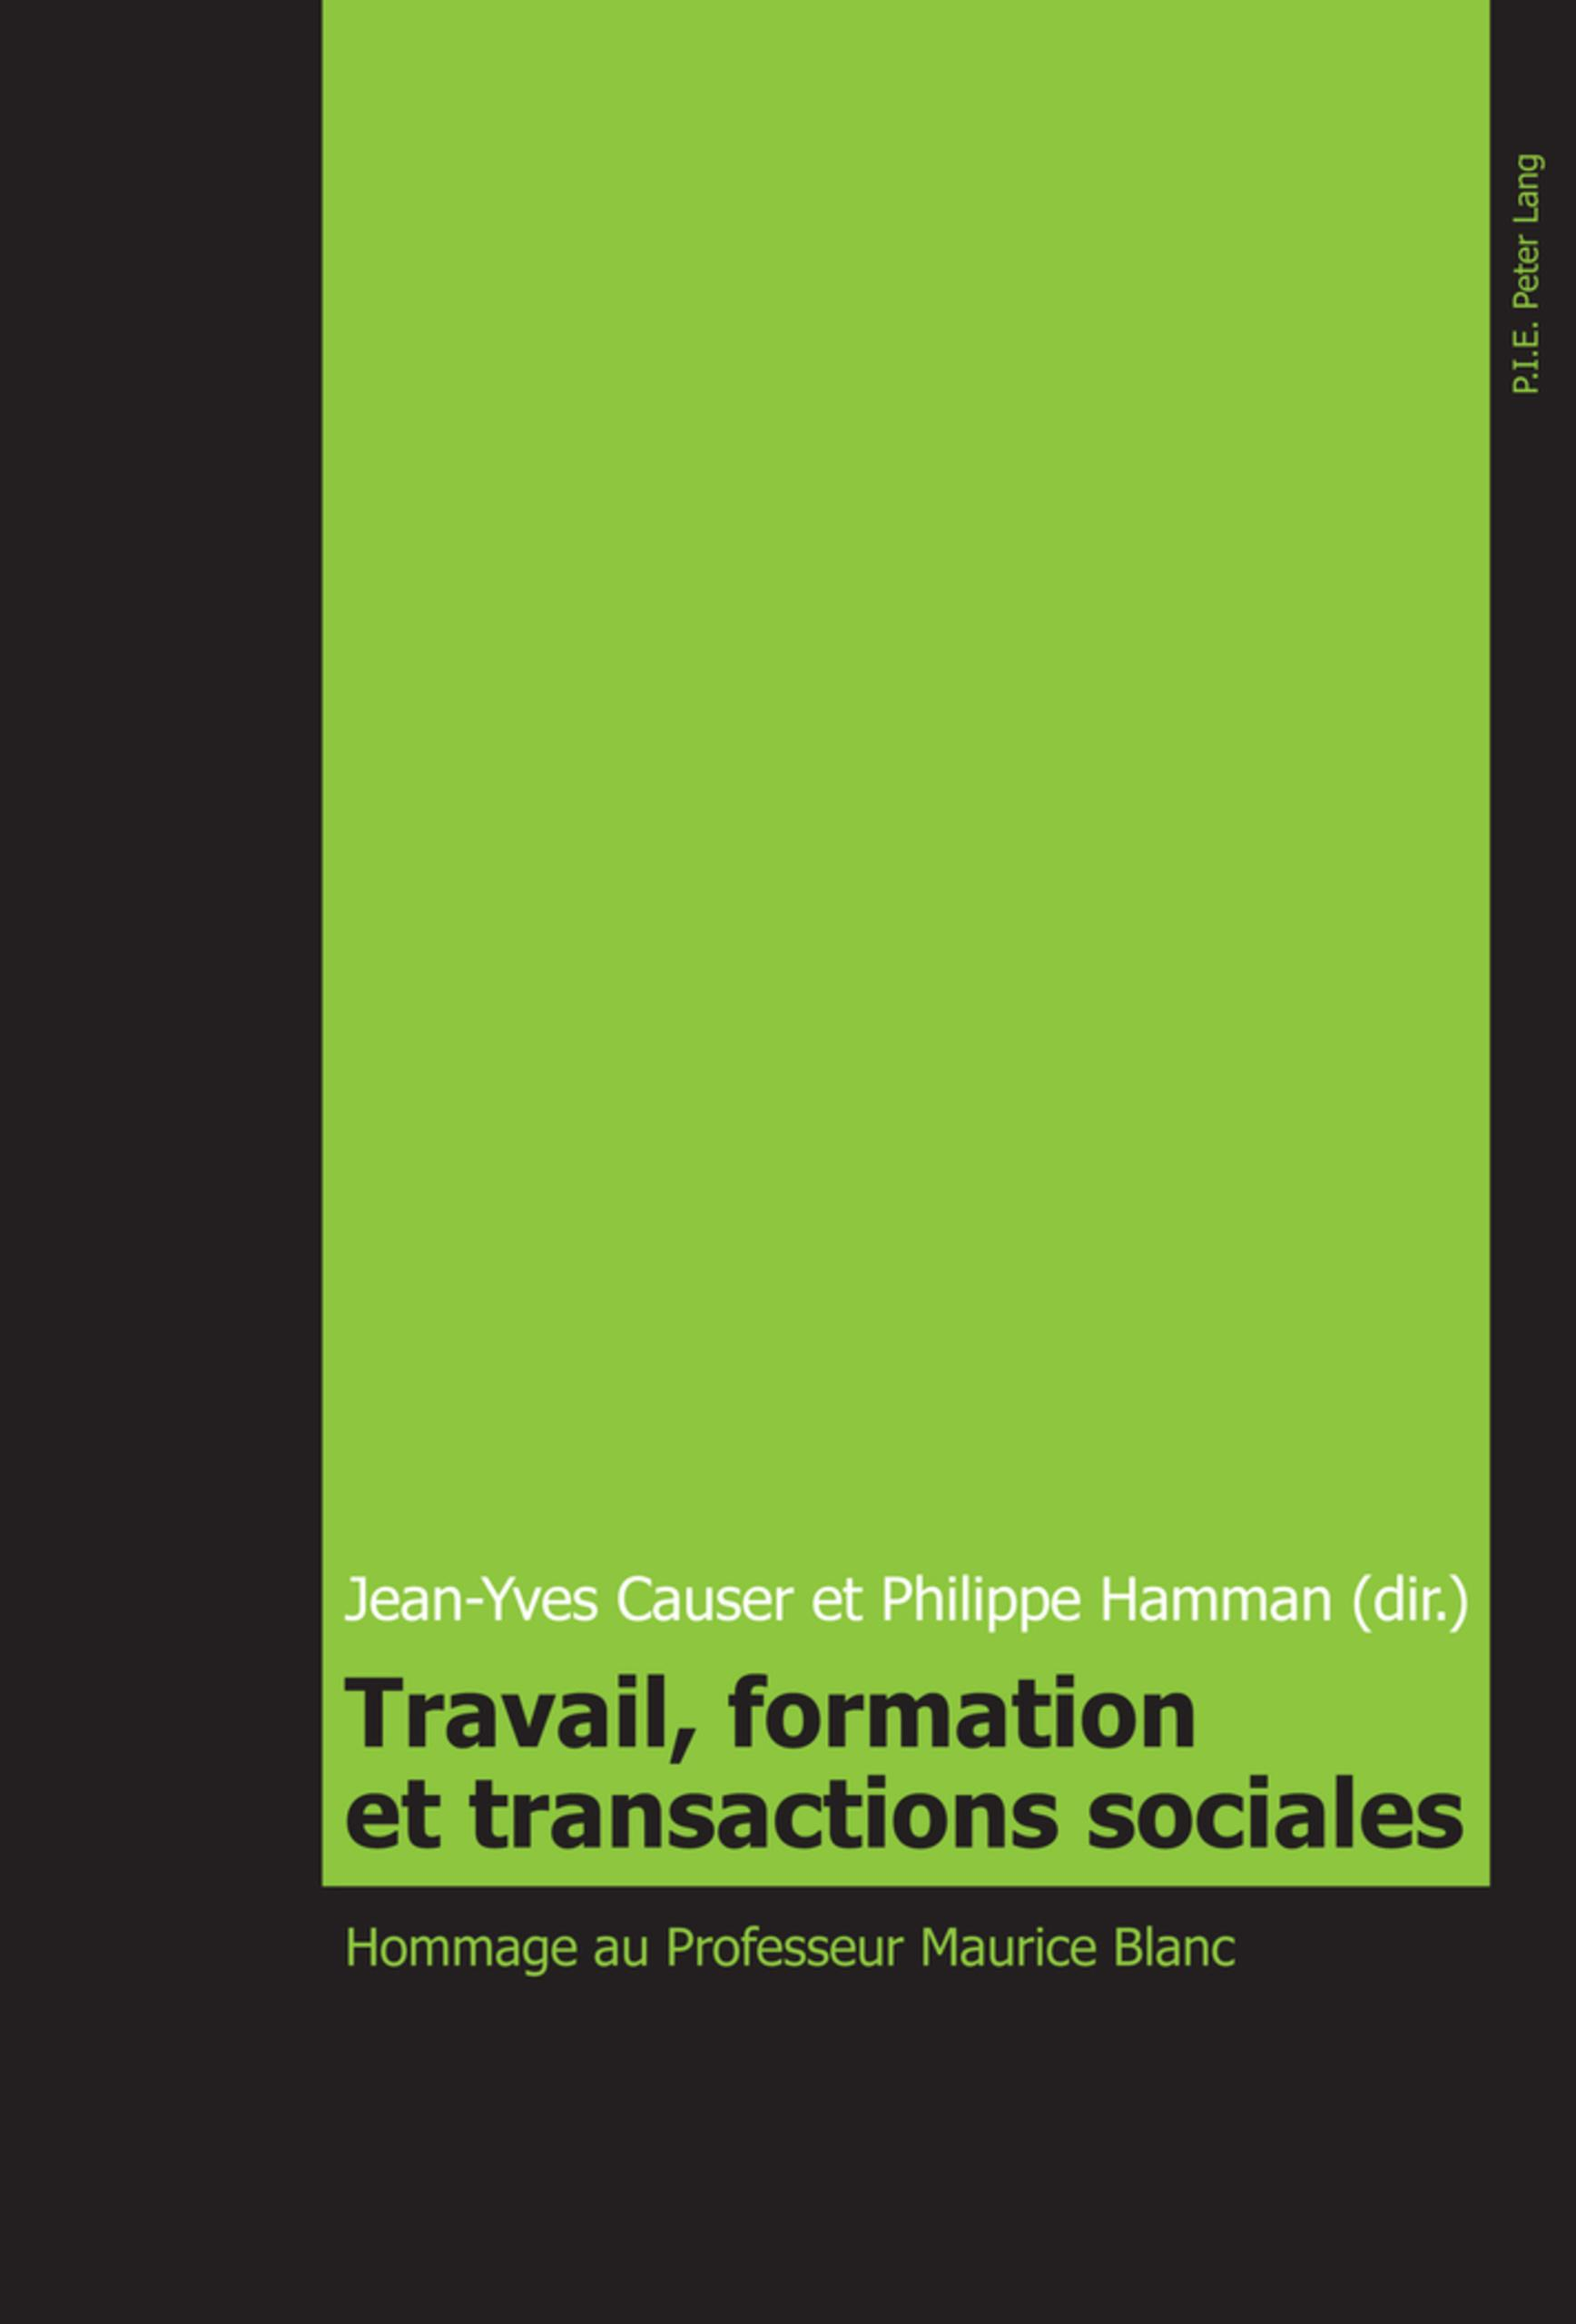 Travail, formation et transactions sociales ~ Jean-Yves Caus ... 9789052016764